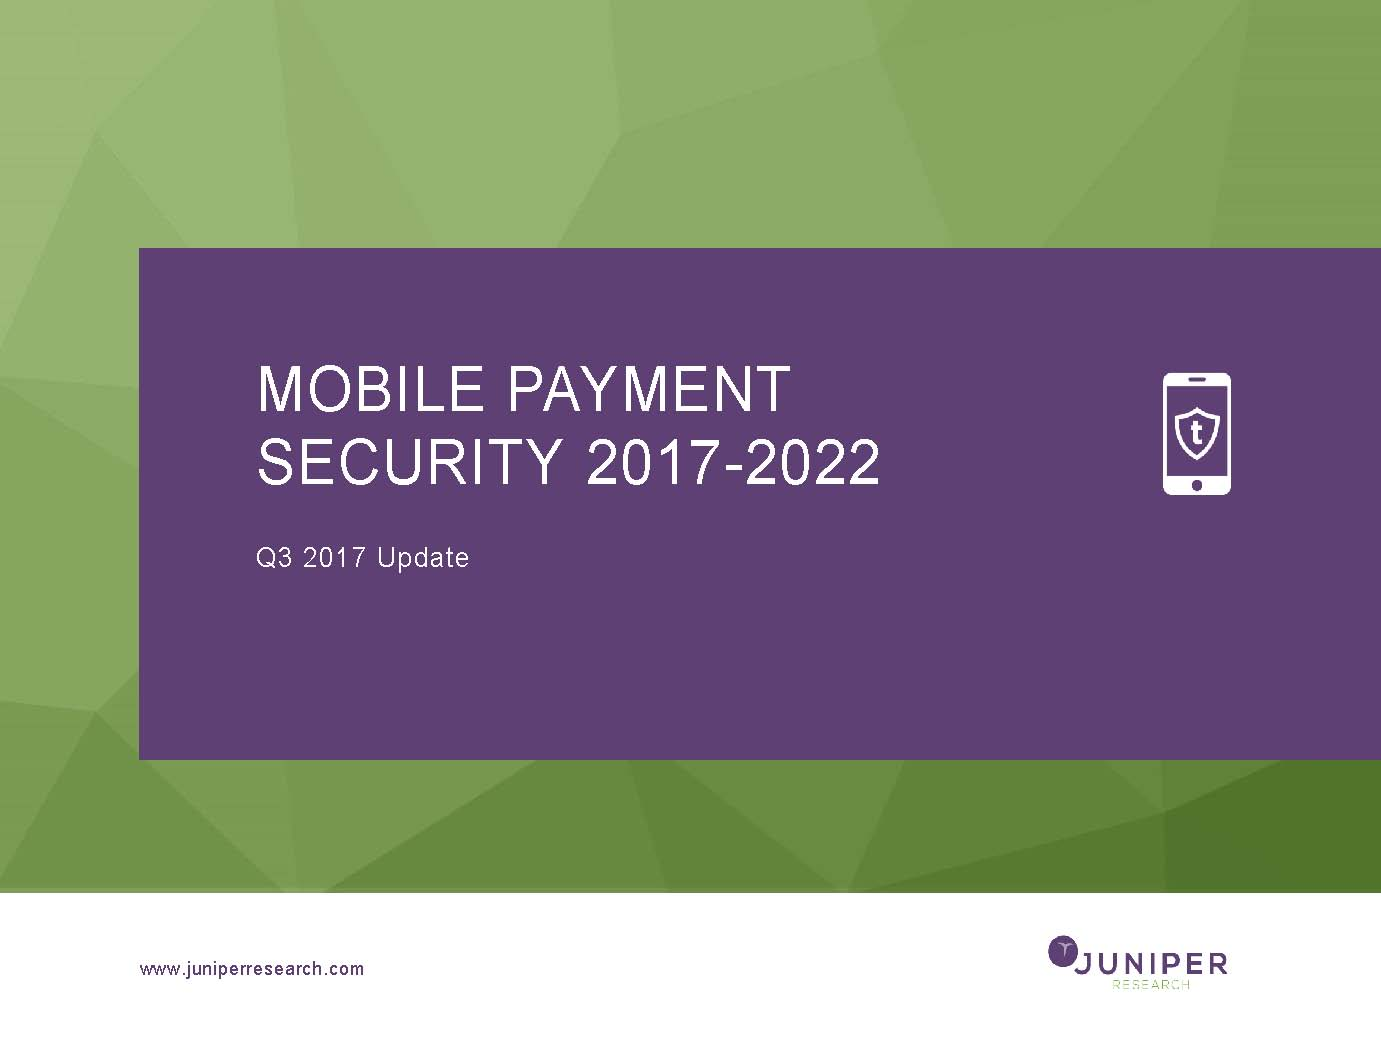 Mobile Payment Security - Q3 2017